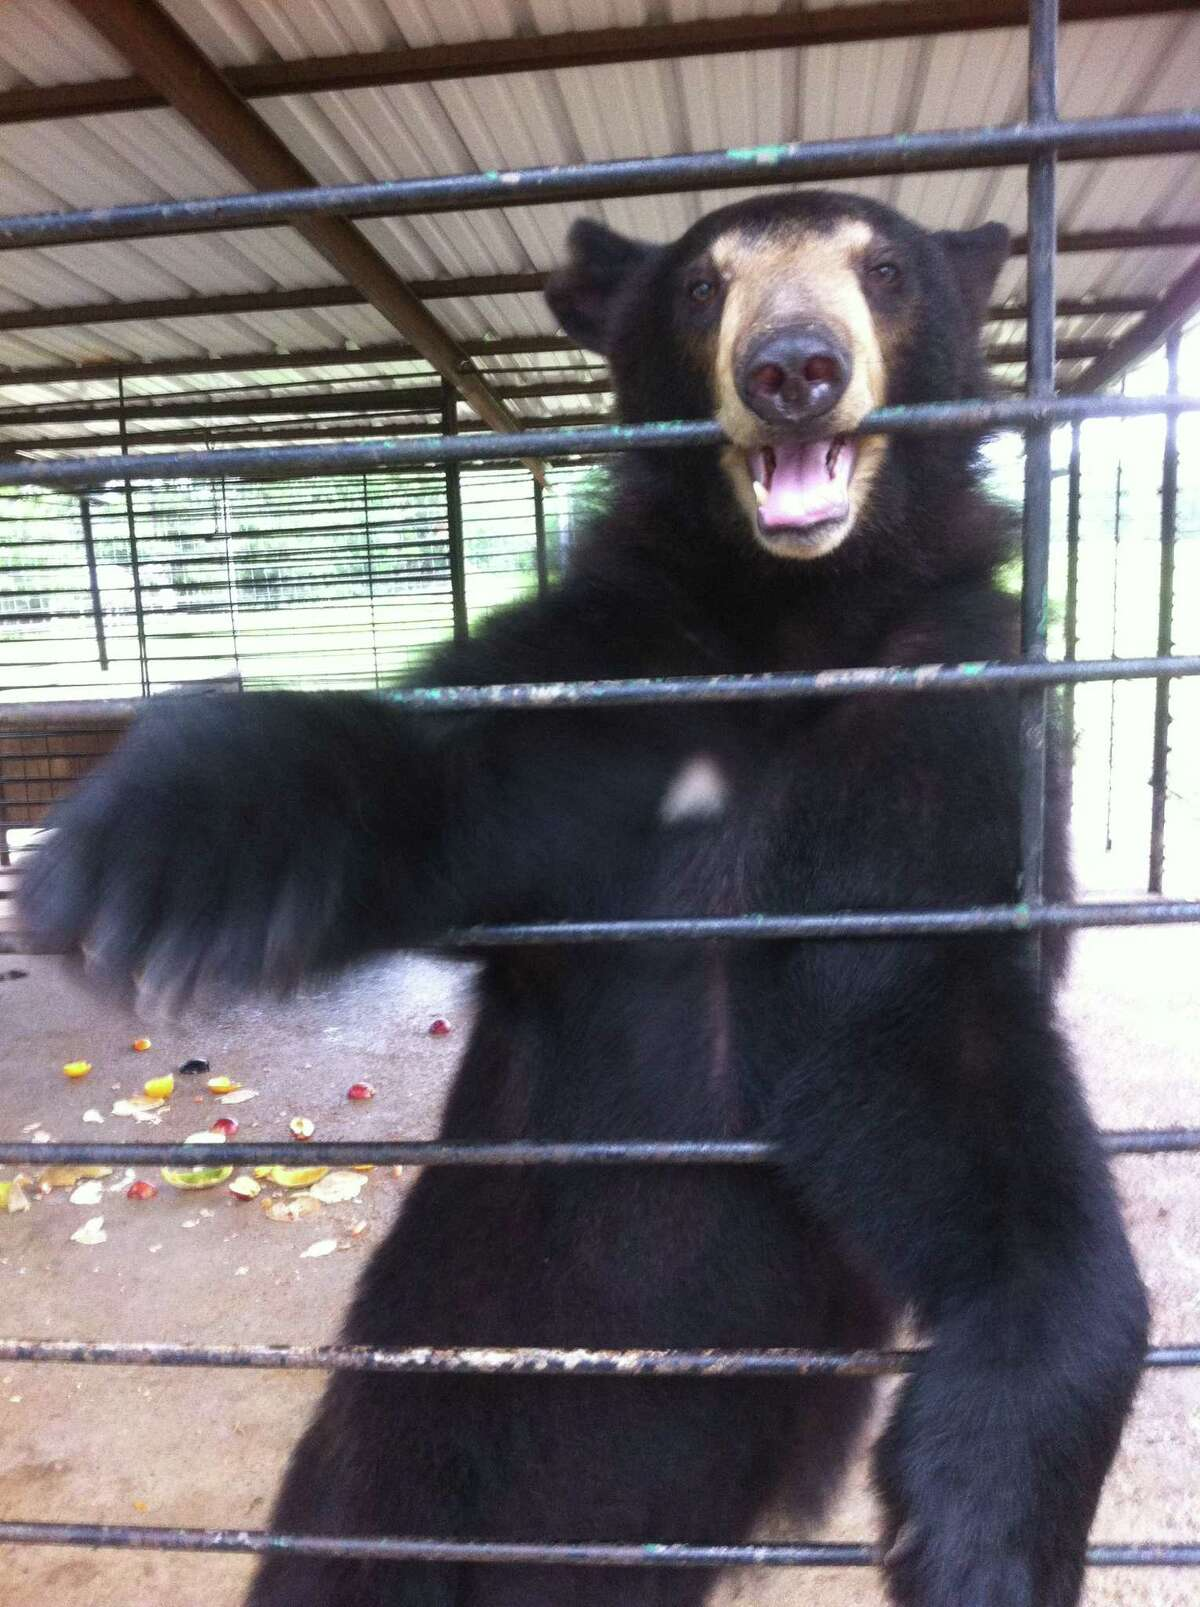 The mission of Bears, ETC is to establish a Bear and Exotic Animal Rescue Sanctuary in Montgomery County, connecting people with nature through education and awareness. Upcoming is a Bear Crawl fundraiser on May 29 and May 30 in Conroe and Montgomery. Kati Krouse of Bears Etc. is pictured caring for bears.